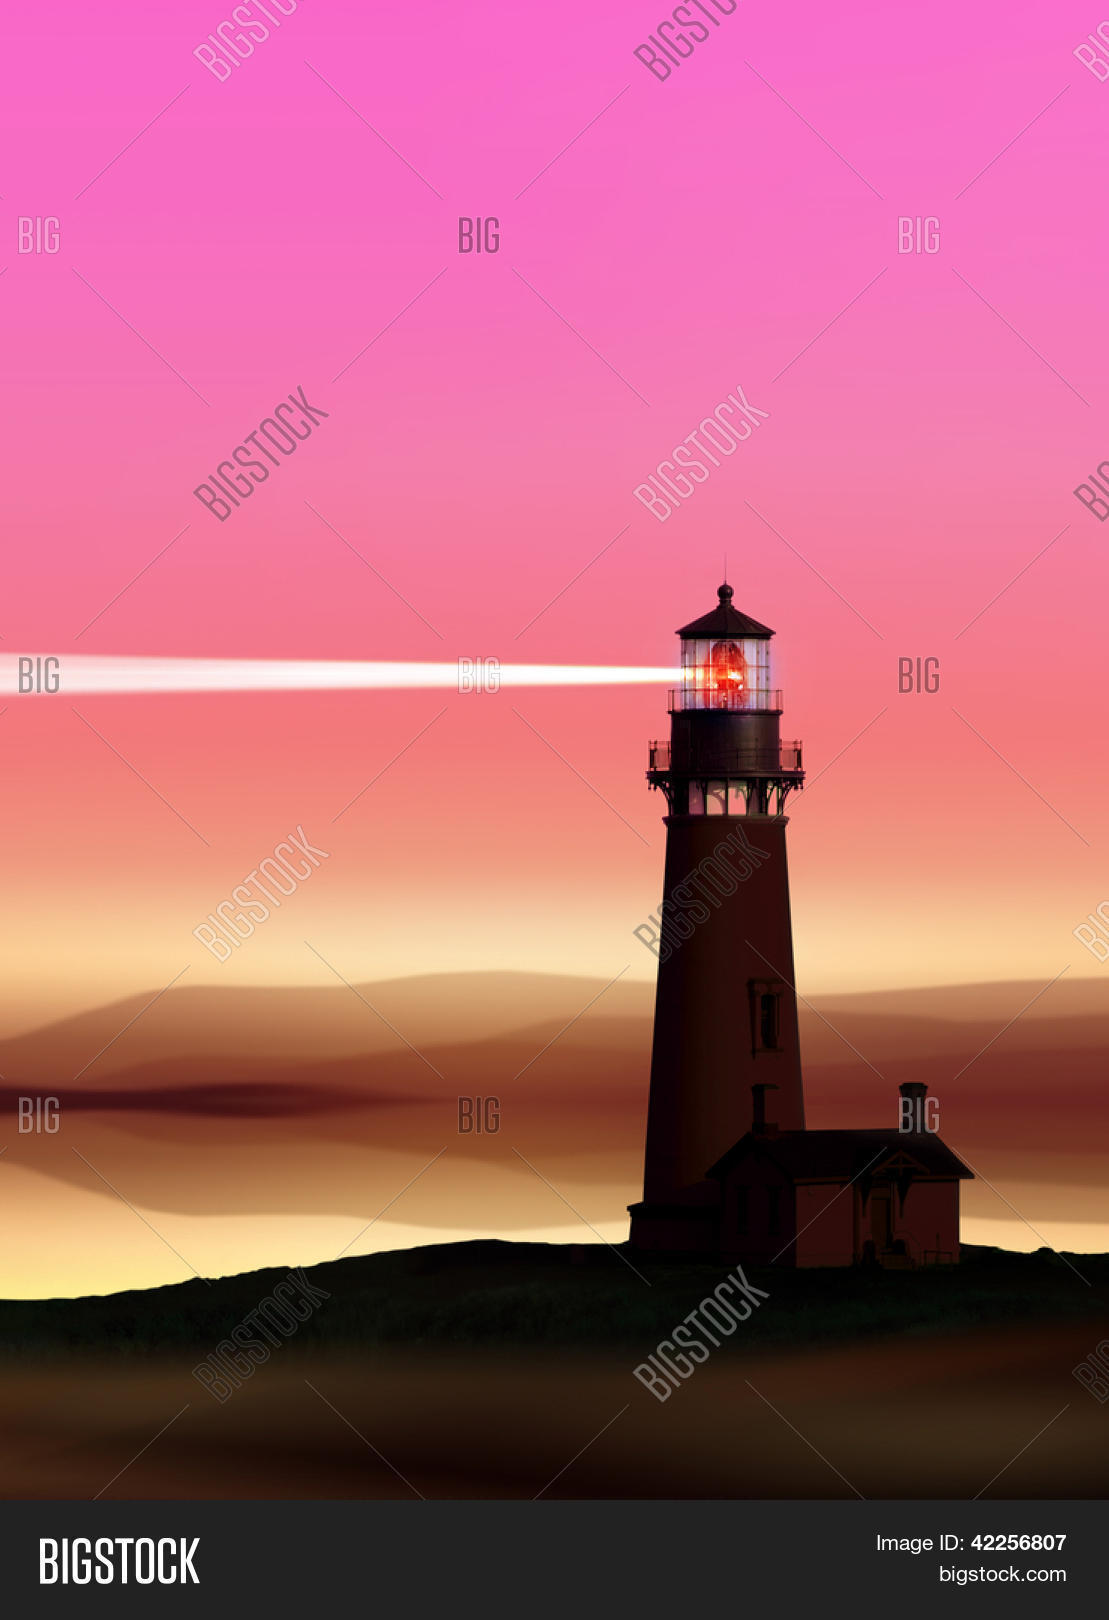 Romantic Lighthouse Image & Photo (Free Trial) | Bigstock